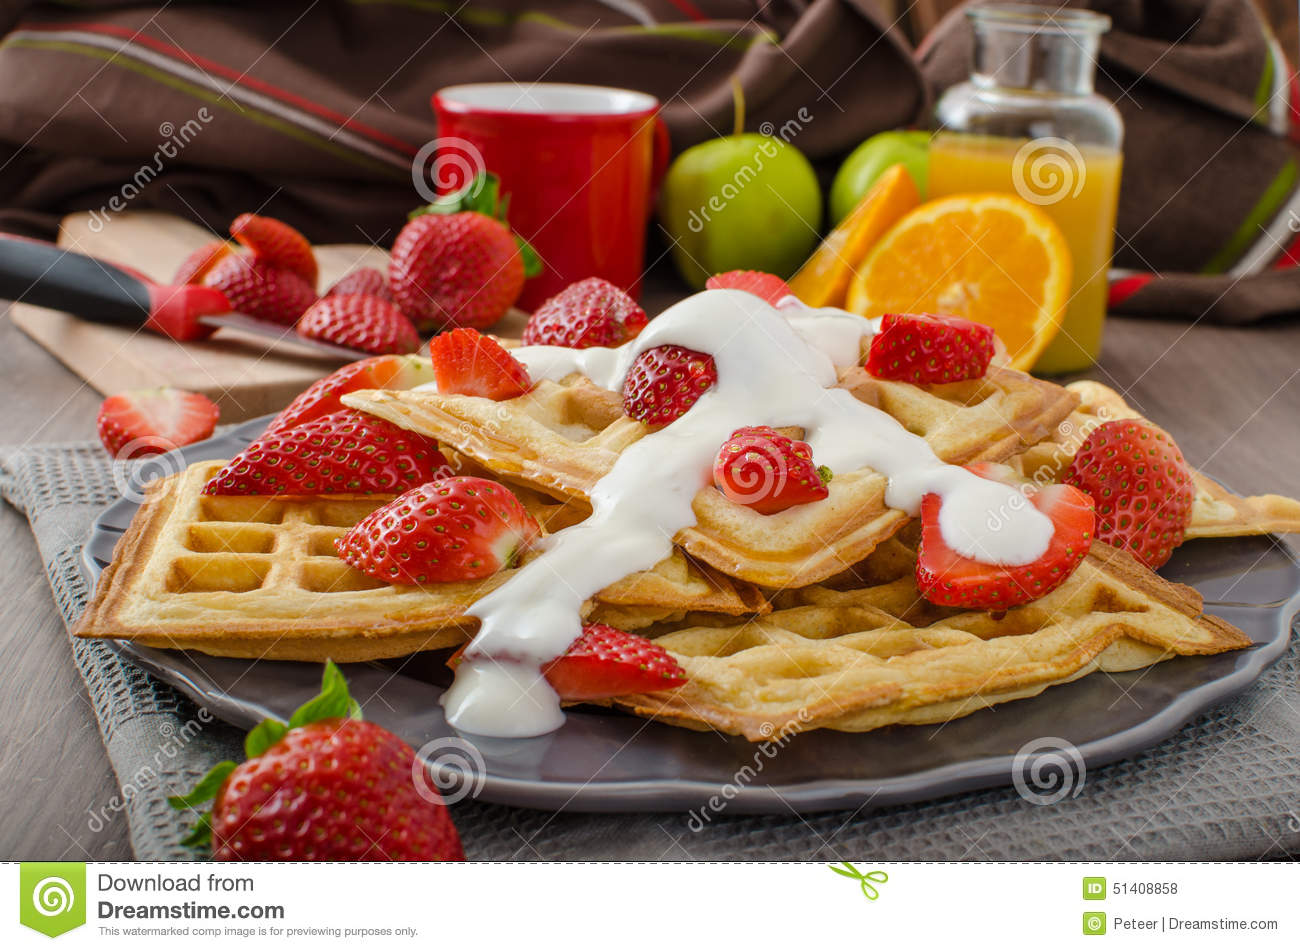 Homemade Waffles With Maple Syrup And Strawberries Stock Photo - Image ...